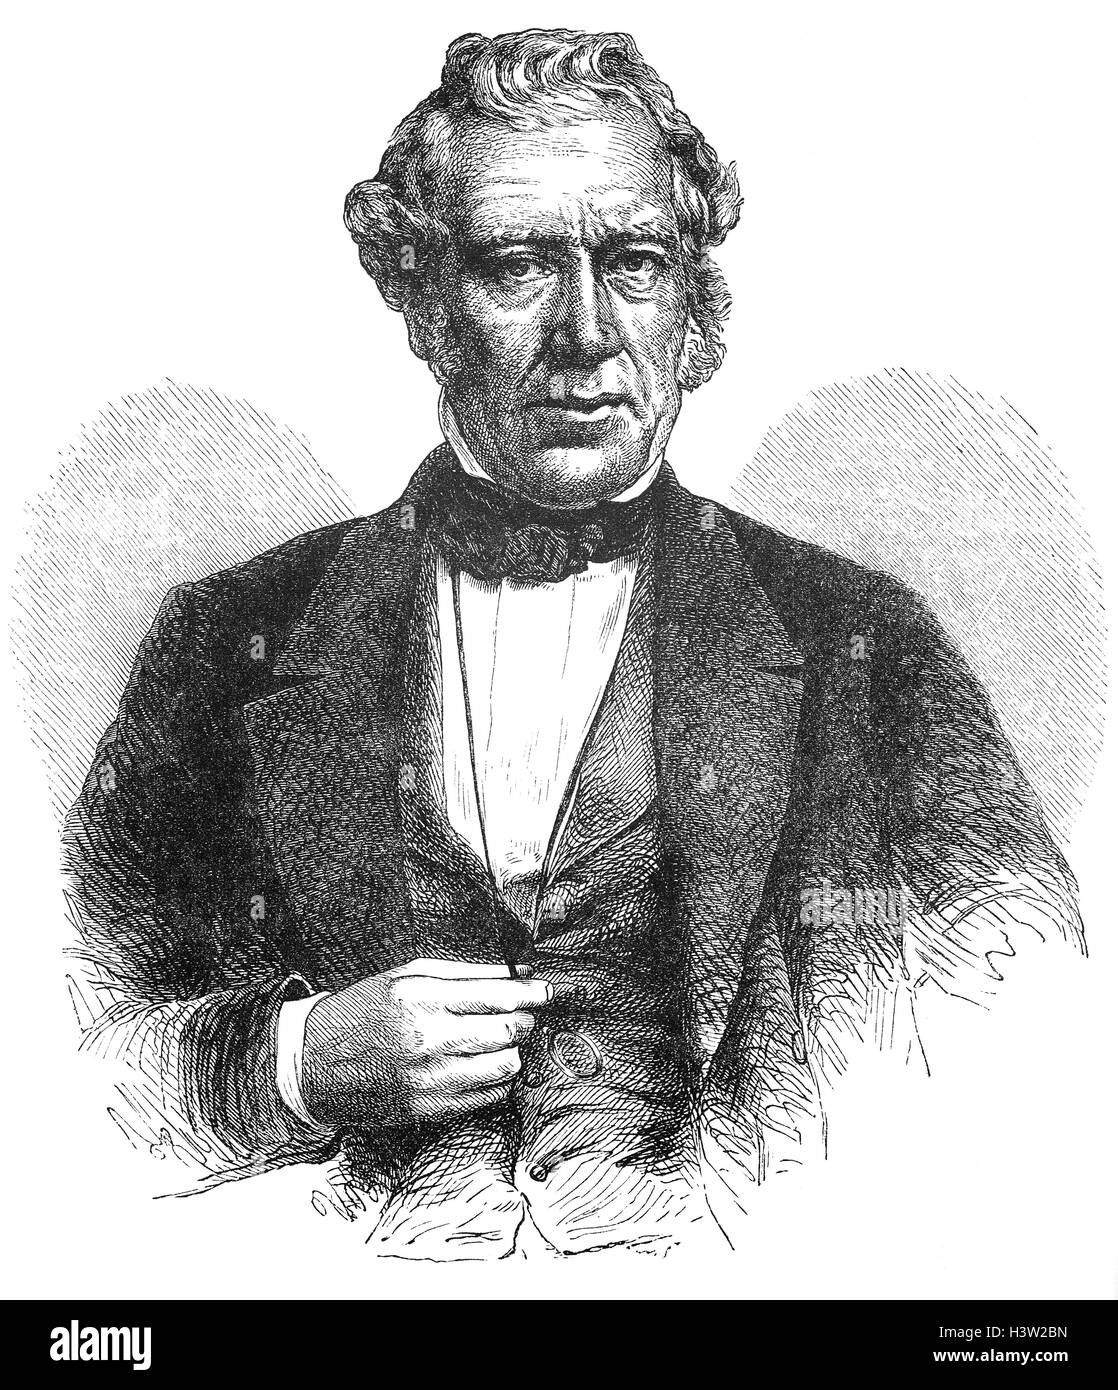 Sir William Fairbairn, 1st Baronet of Ardwick (1789 – 1874) was a Scottish civil engineer and  structural engineer. - Stock Image